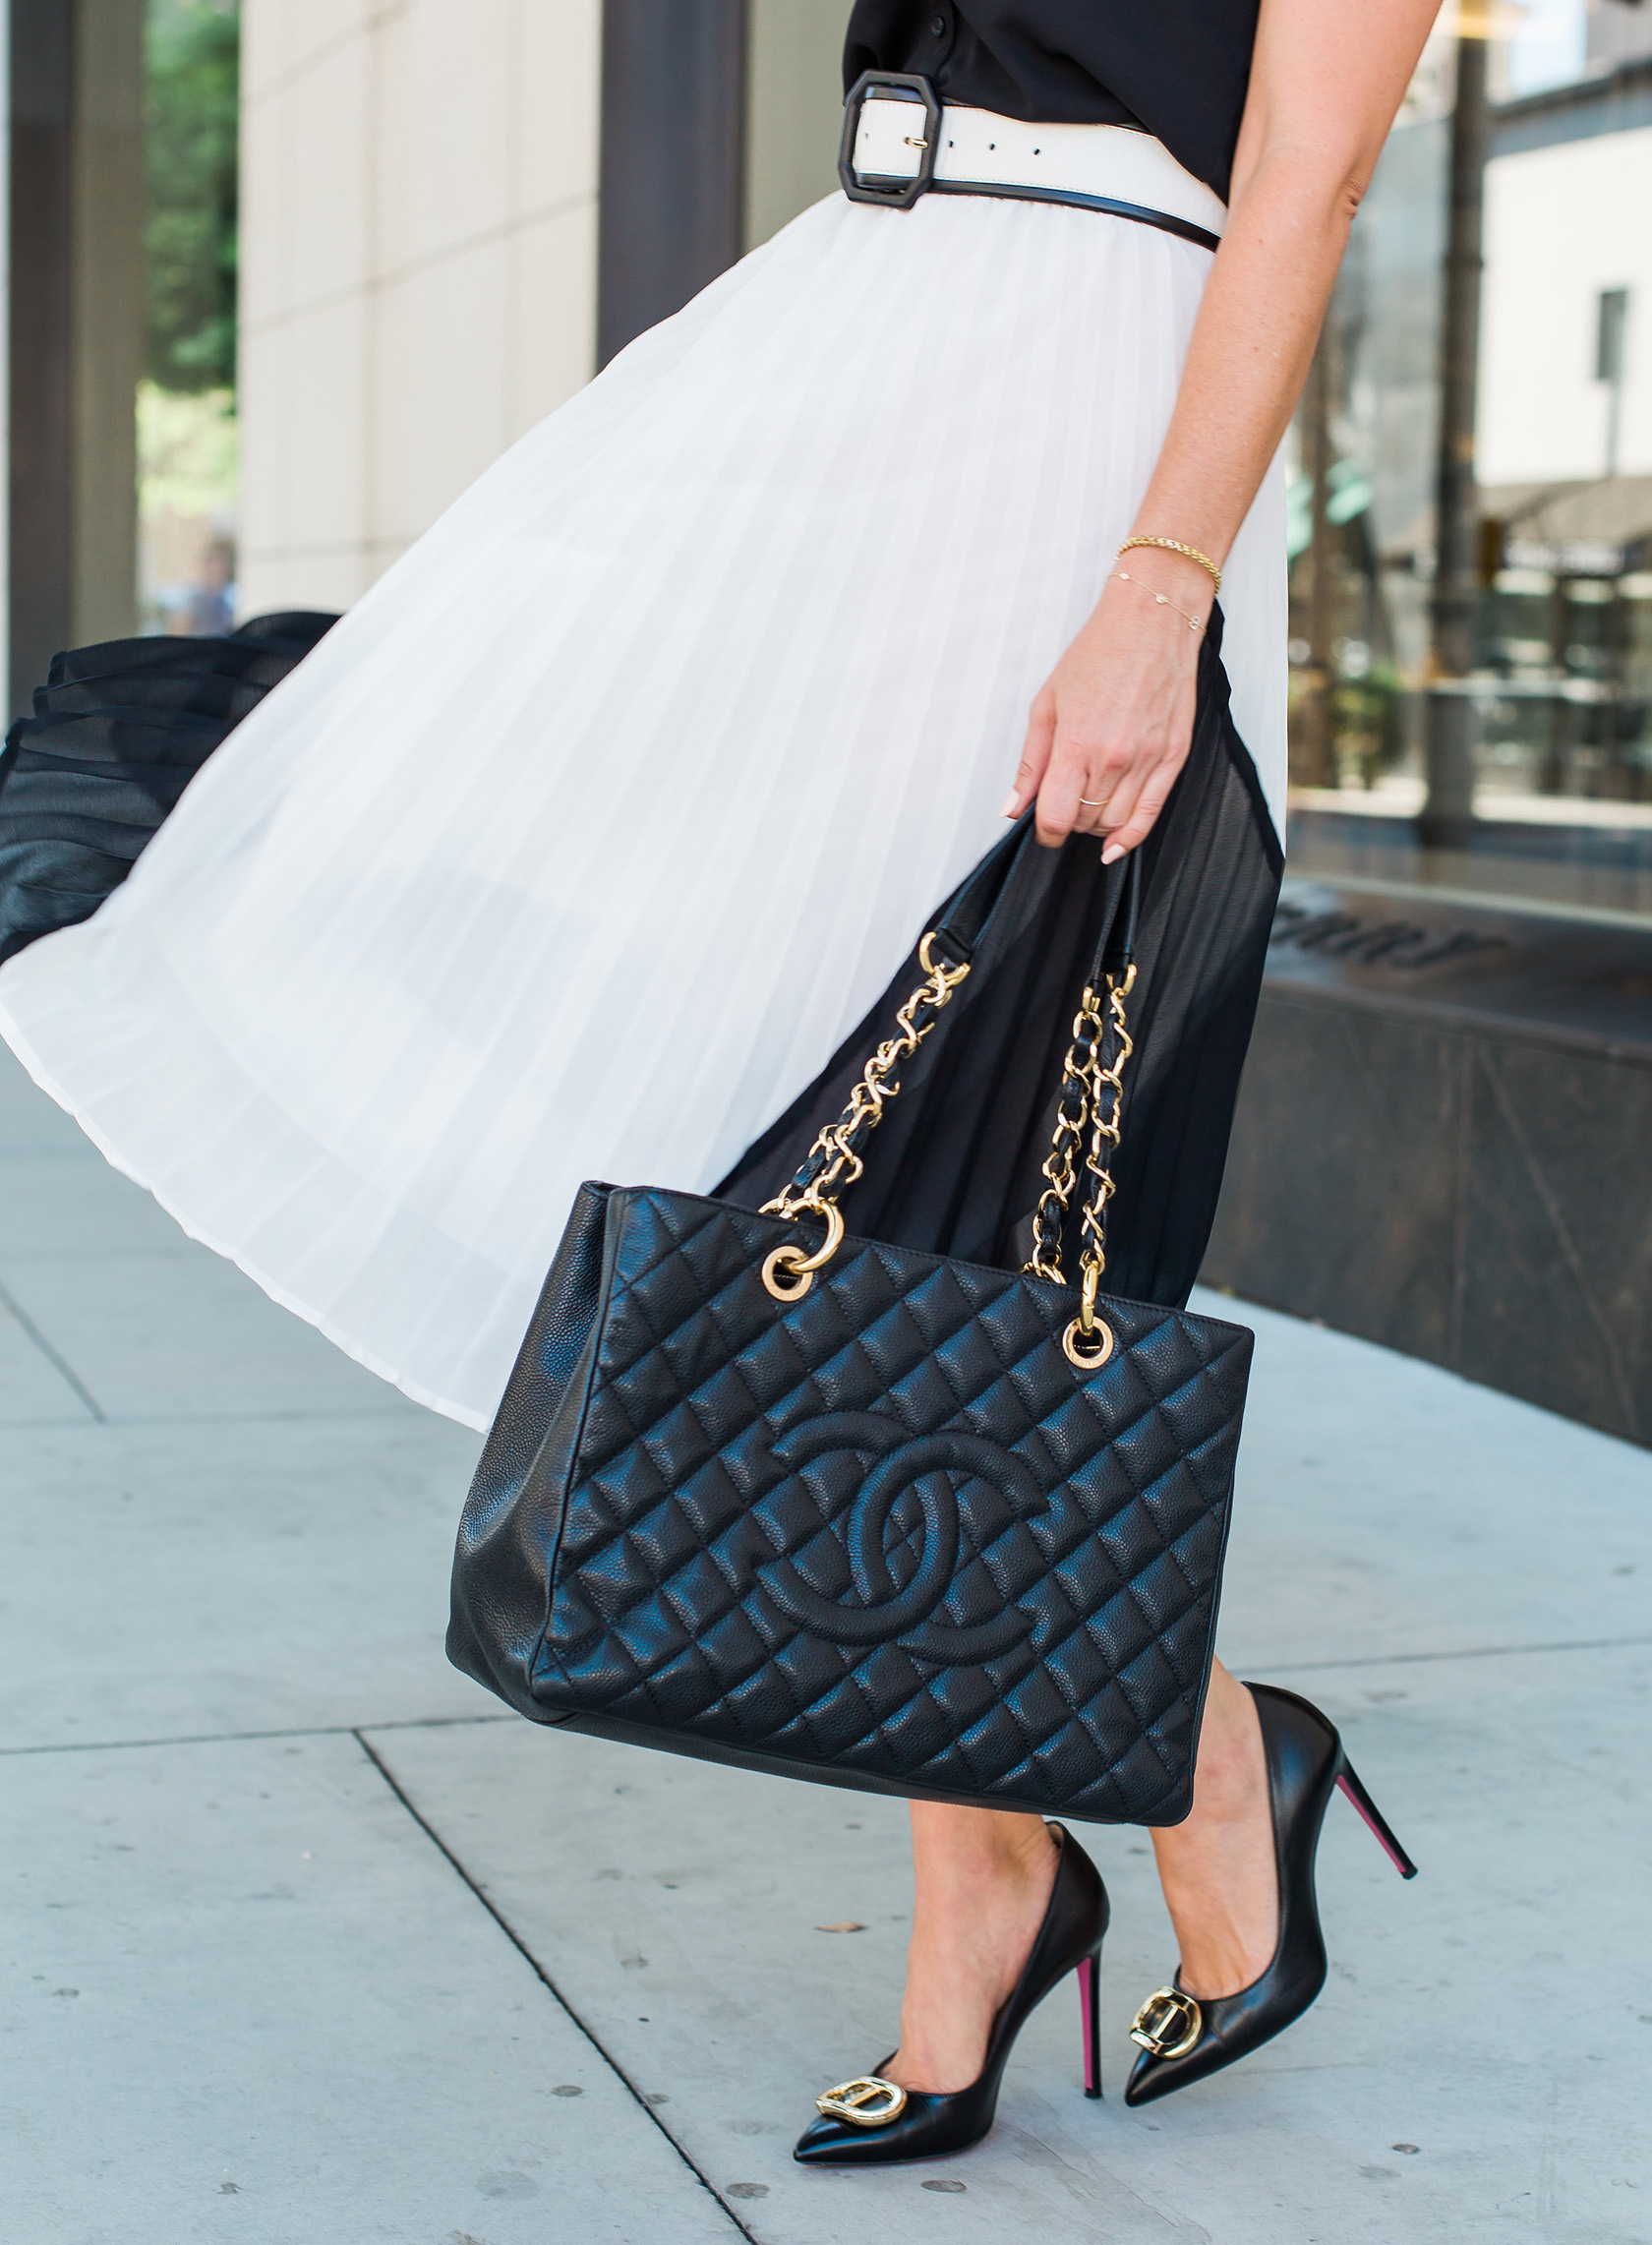 Sydne Style reviews chanel gst black bag for classic handbags